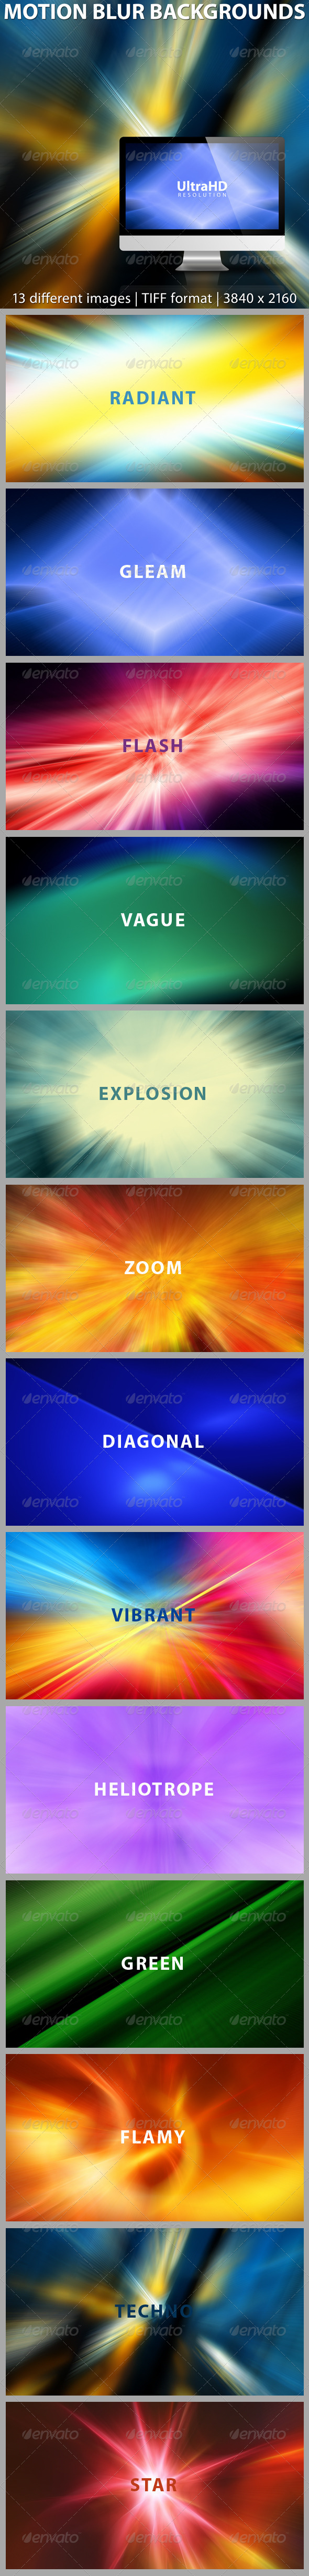 Abstract Motion Blur Backgrounds - Abstract Backgrounds